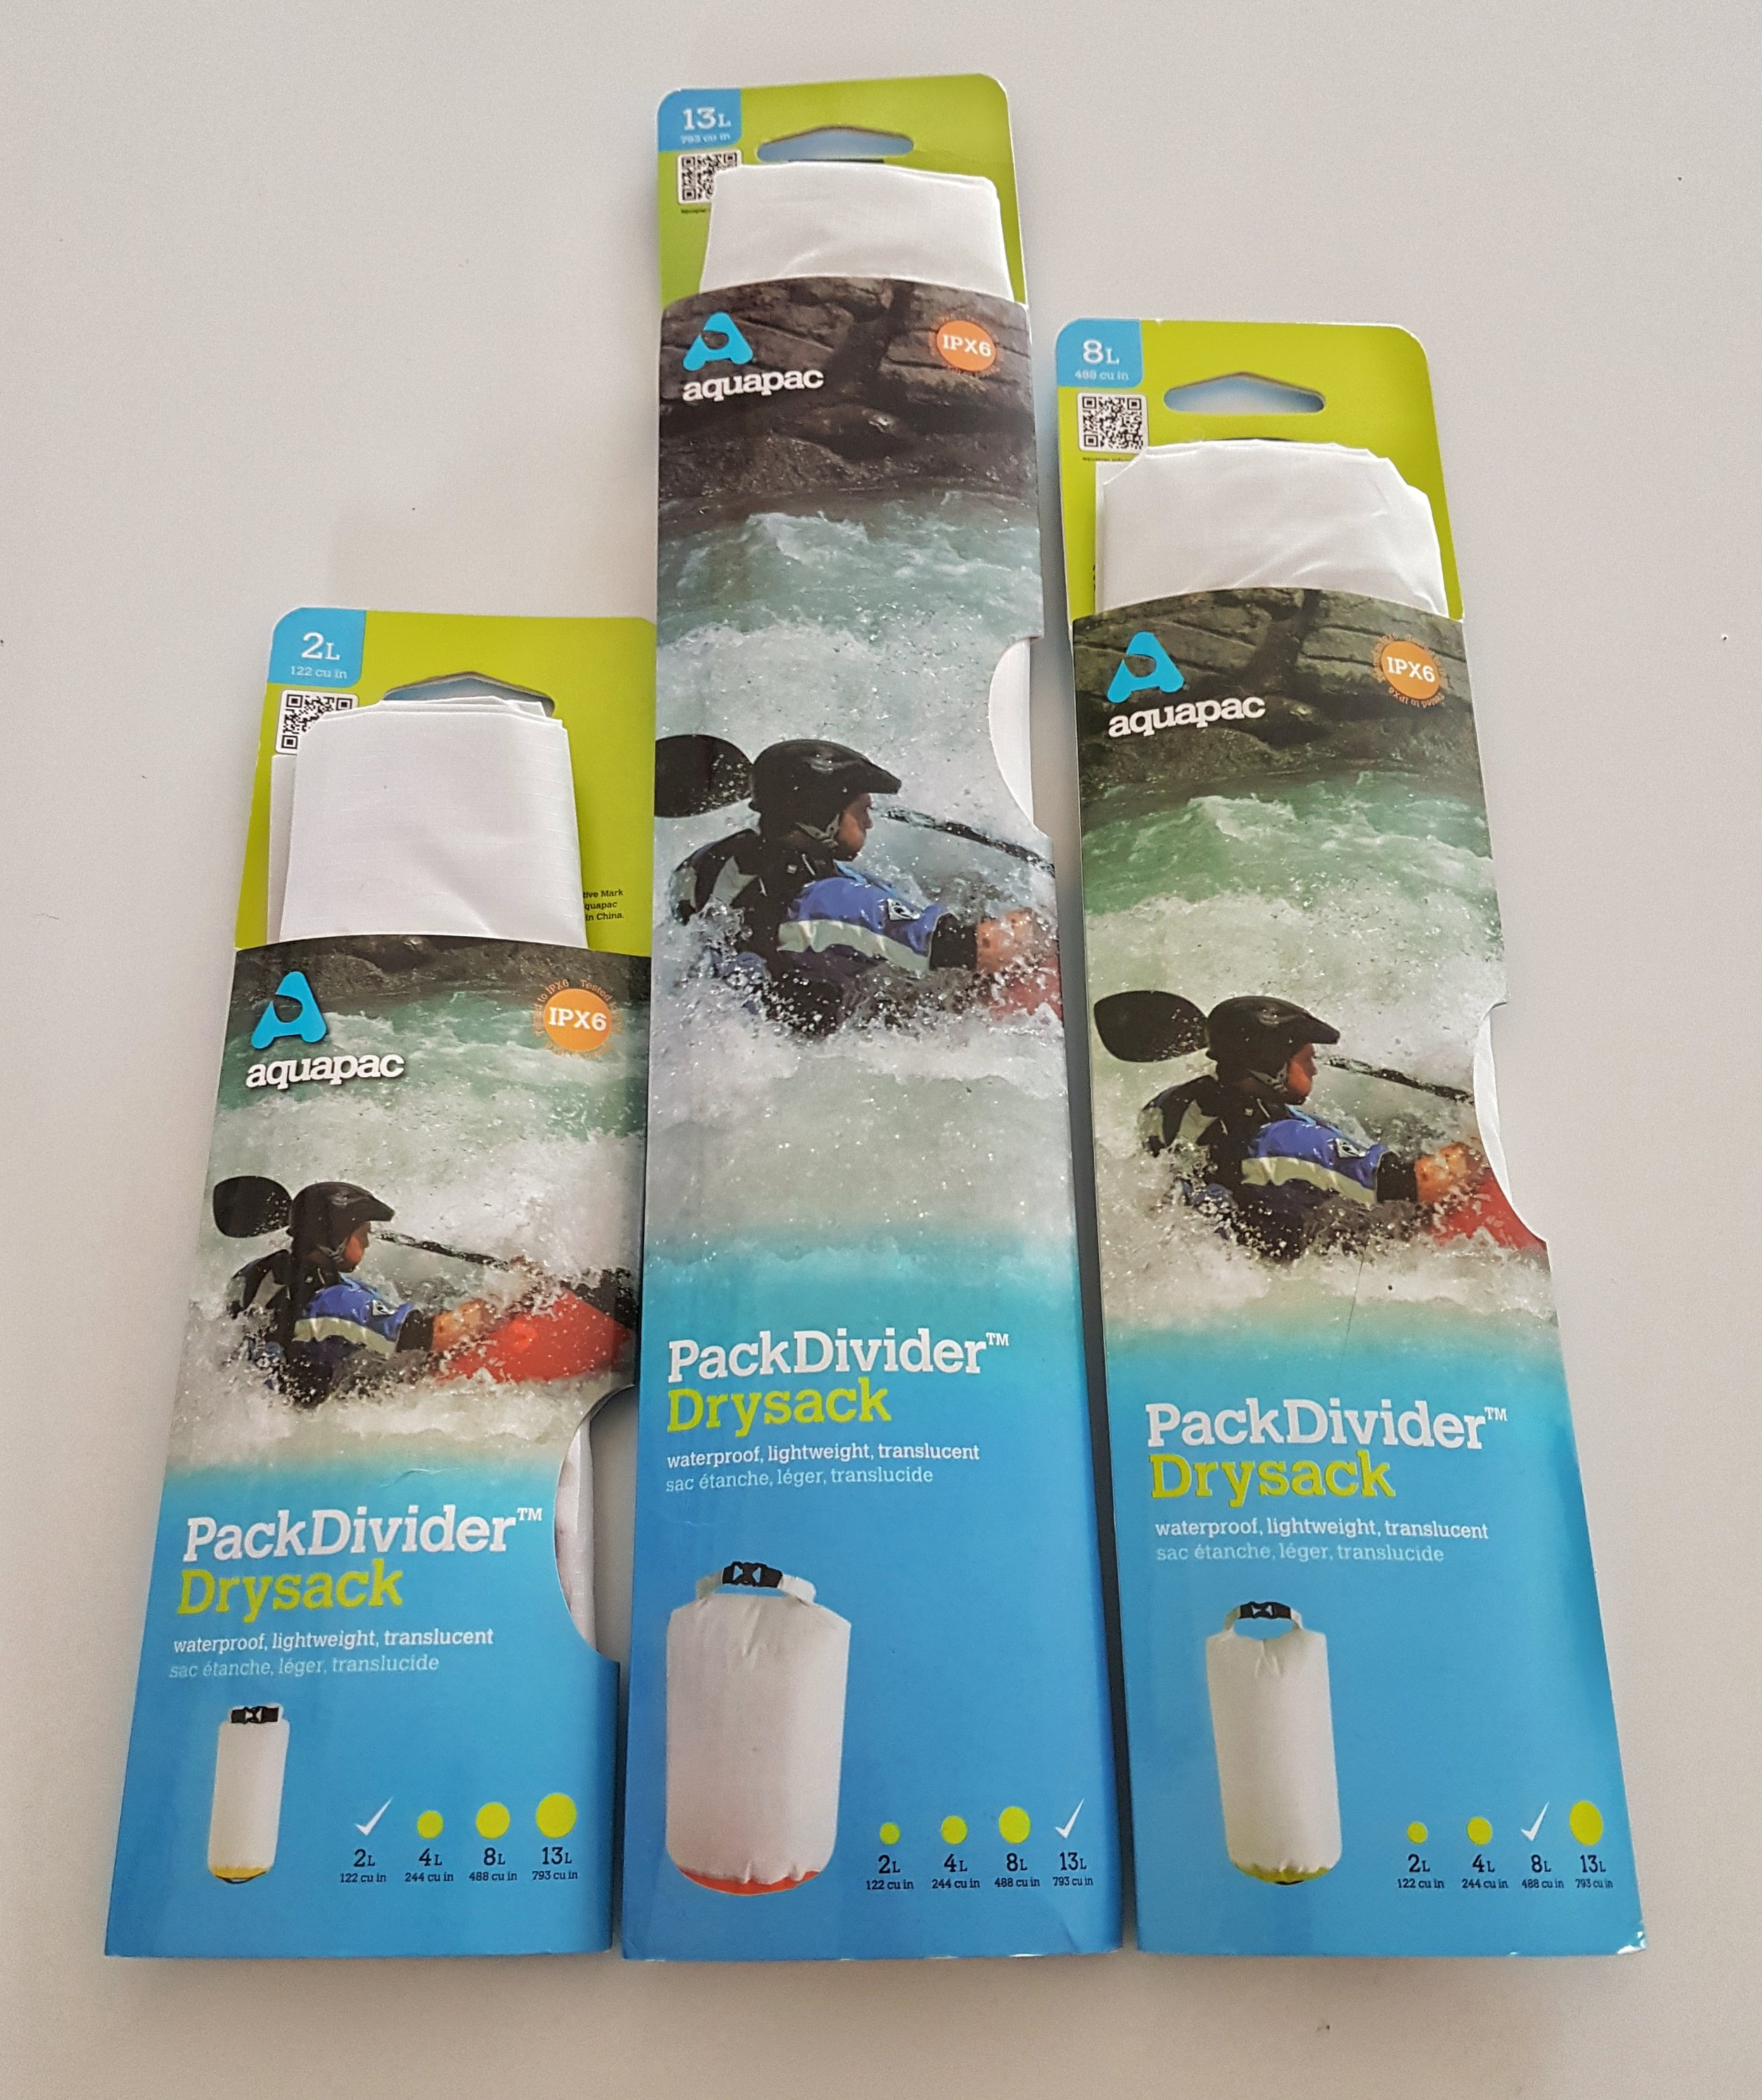 The  Aquapac Drysack  dividers are fabulous and again I cannot fault their overall design, quality and usefulness.  On my cycle commute, I use them to pack in all manner of things. Allowing them to stay safe and secure, within my pannier bags. Perfectly waterproof, light and durable.